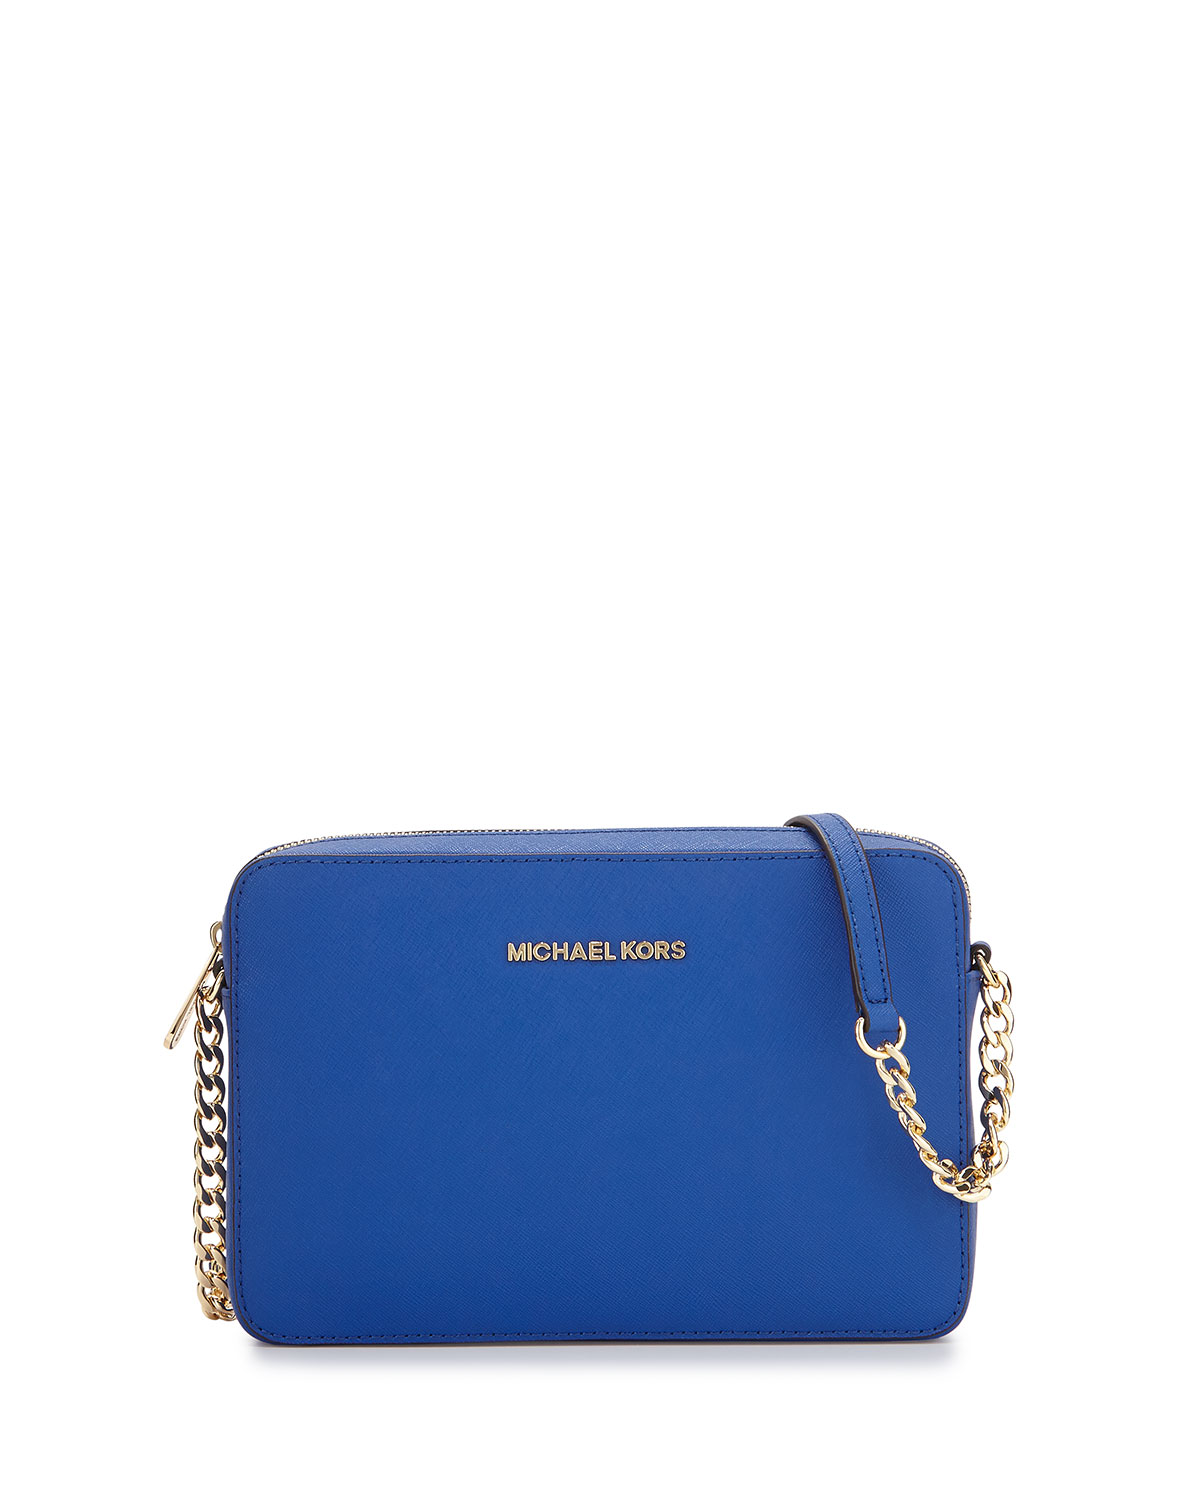 06ccd7525ae9 ... italy michael michael korsjet set travel saffiano crossbody bag  electric blue 67dd0 15114